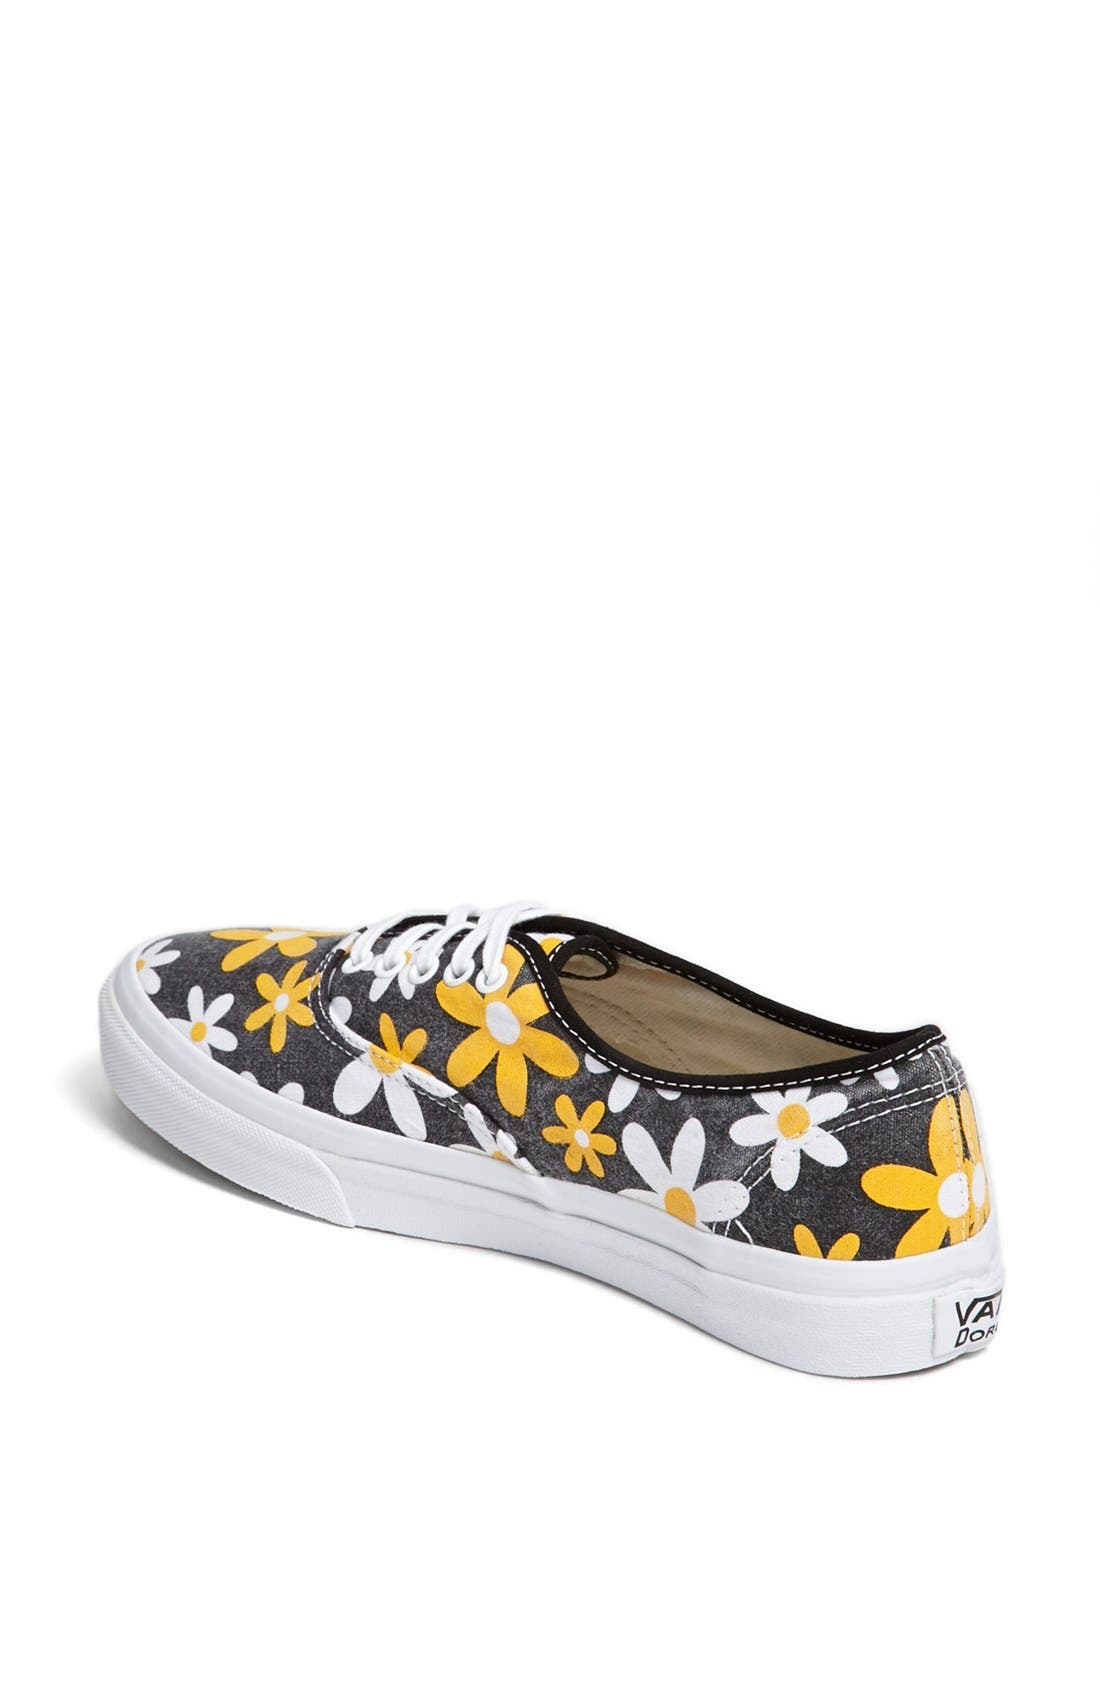 Alternate Image 2  - Vans 'Authentic - Slim' Sneaker (Women)